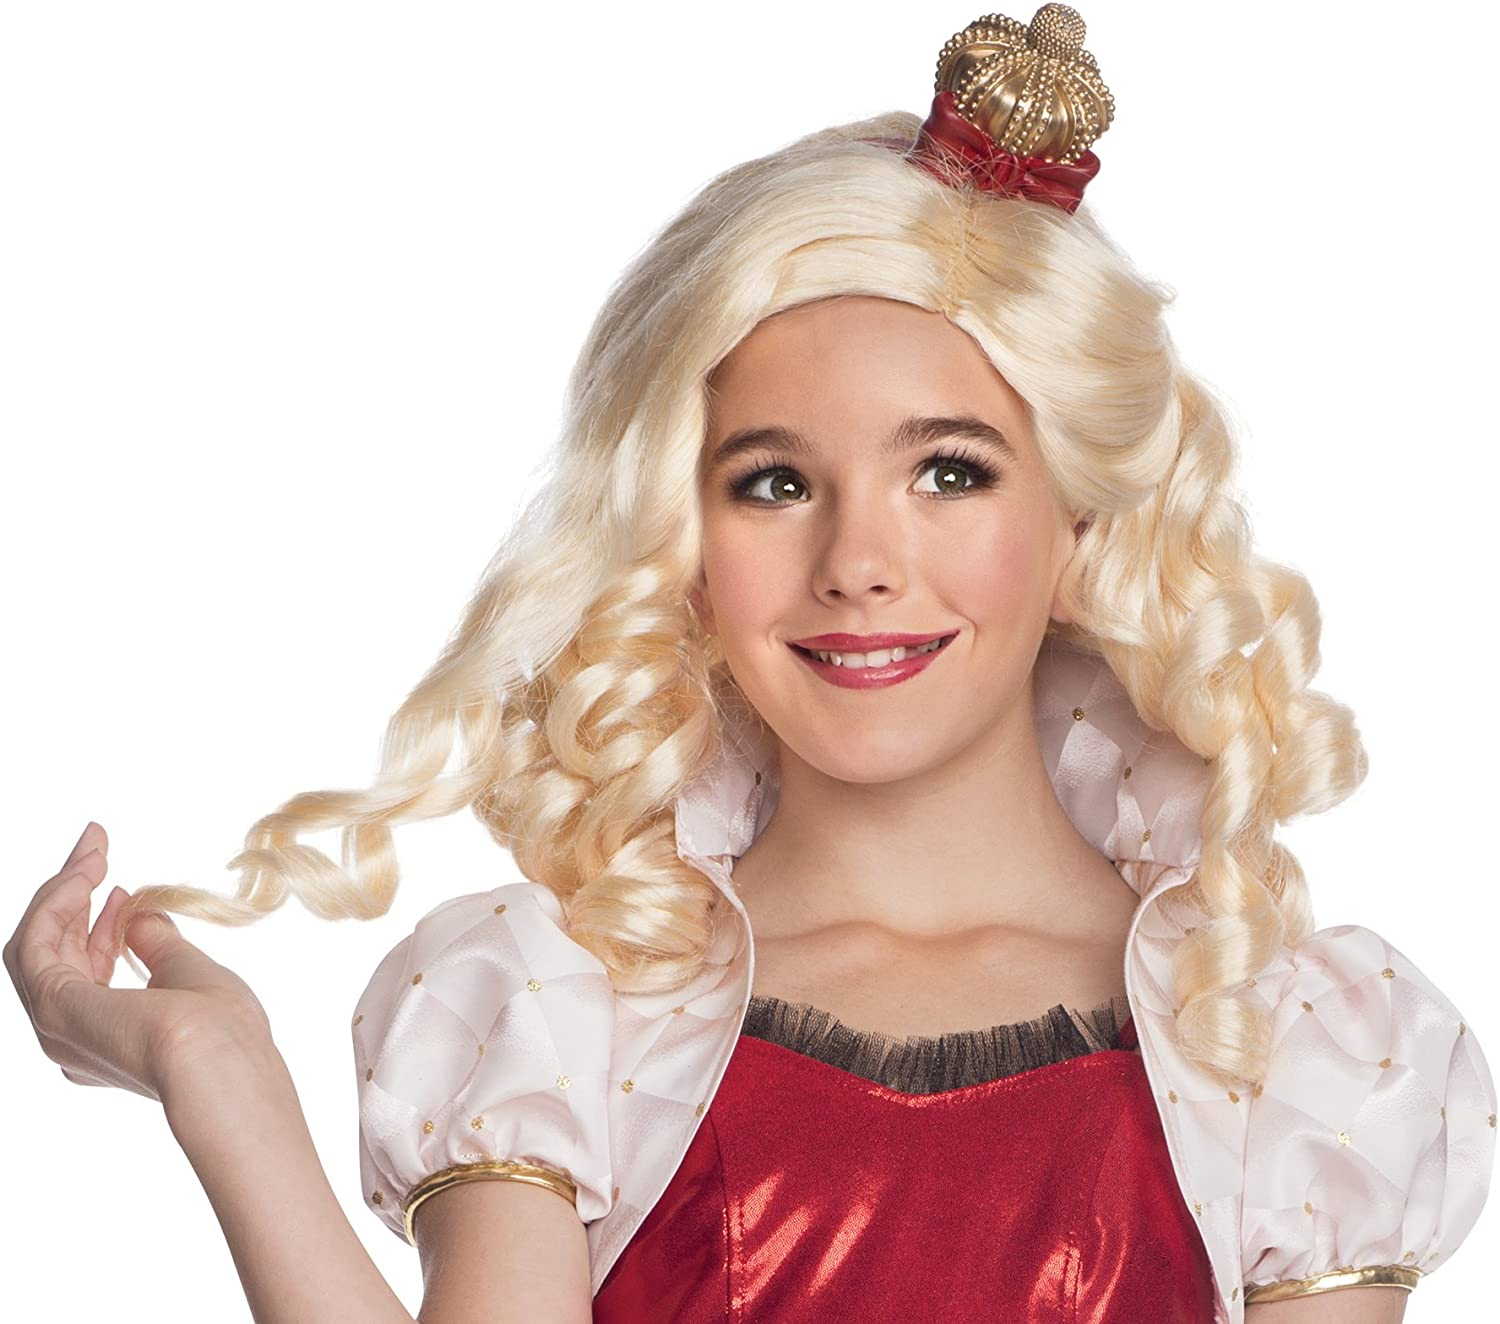 Rubie's Costume Co - Ever After High - Apple White Wig with Headpiece